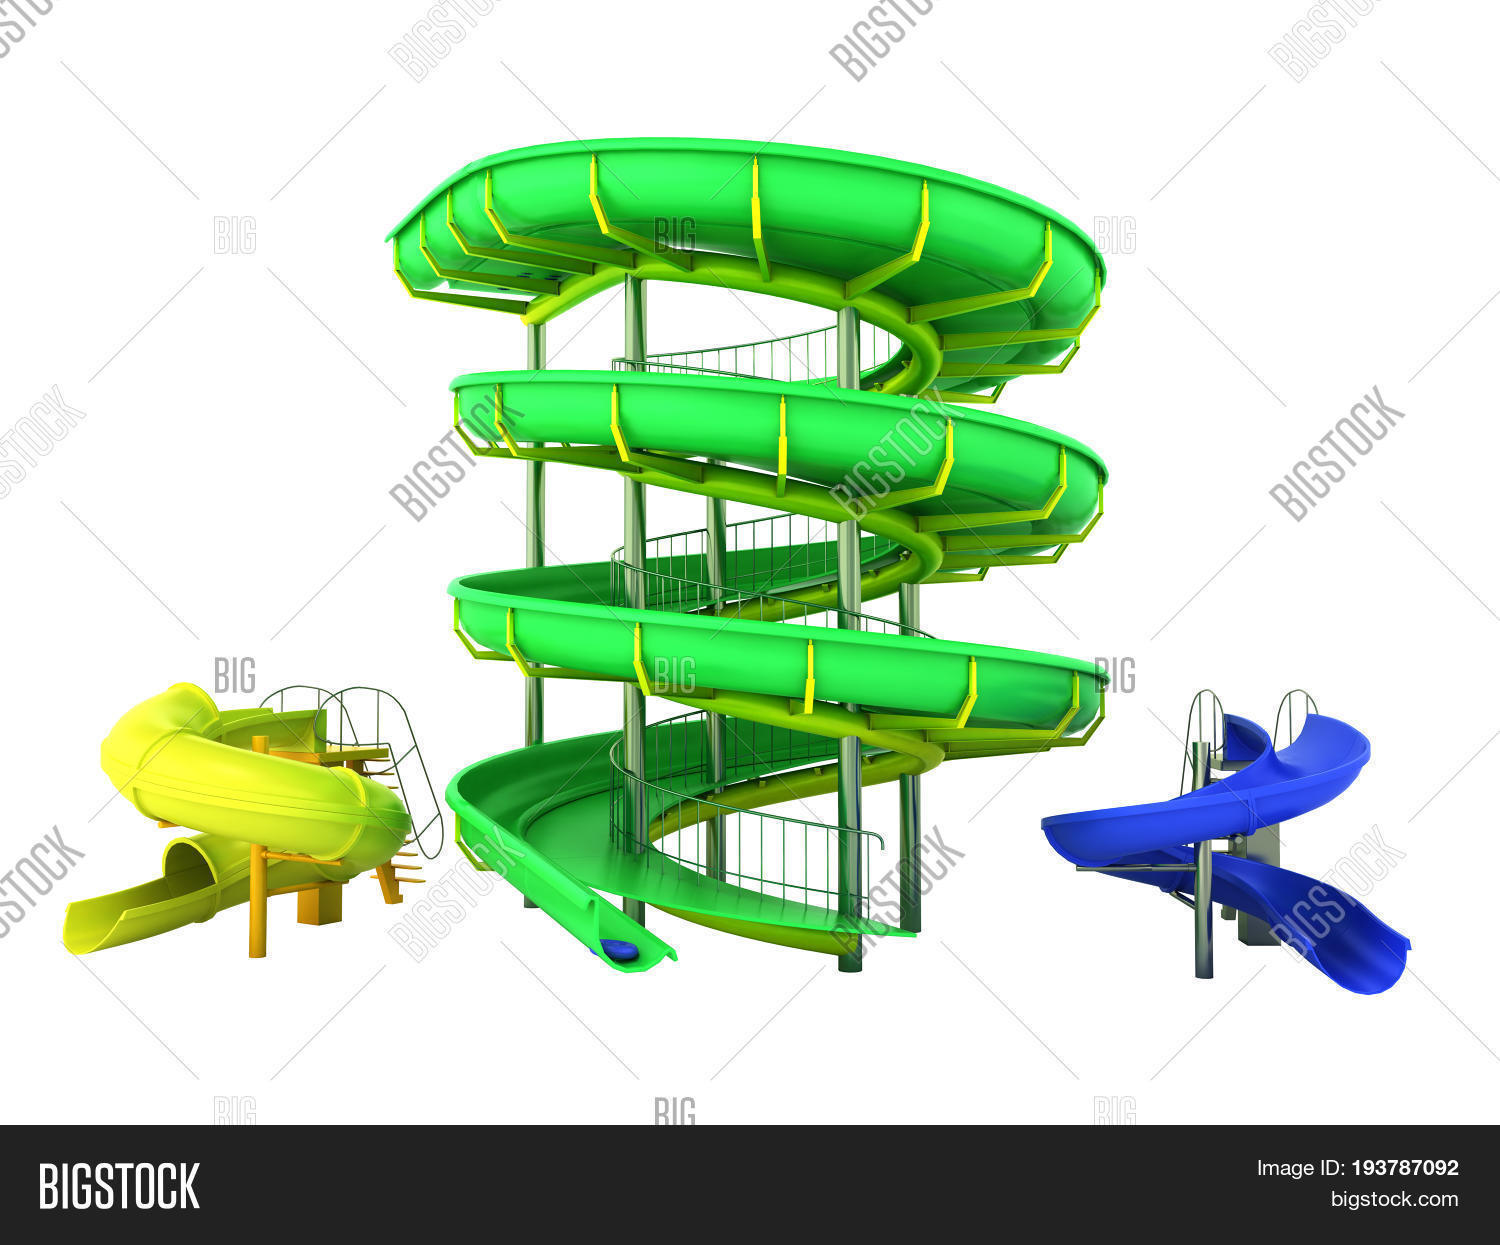 3d,adrenalin,adventure,aqua,aquapark,attraction,blue,clear,colorful,drop,enjoyment,entertaining,entertainment,extreme,fall,fast,fear,fun,height,high,holiday,joy,leisure,motion,park,pipe,plastic,pleasure,pool,recreational,refreshing,relaxing,render,resort,ring,sky,slid,speed,splashing,summer,summertime,sun,swim,tourists,tree,vacation,water,wavy,wet,wide